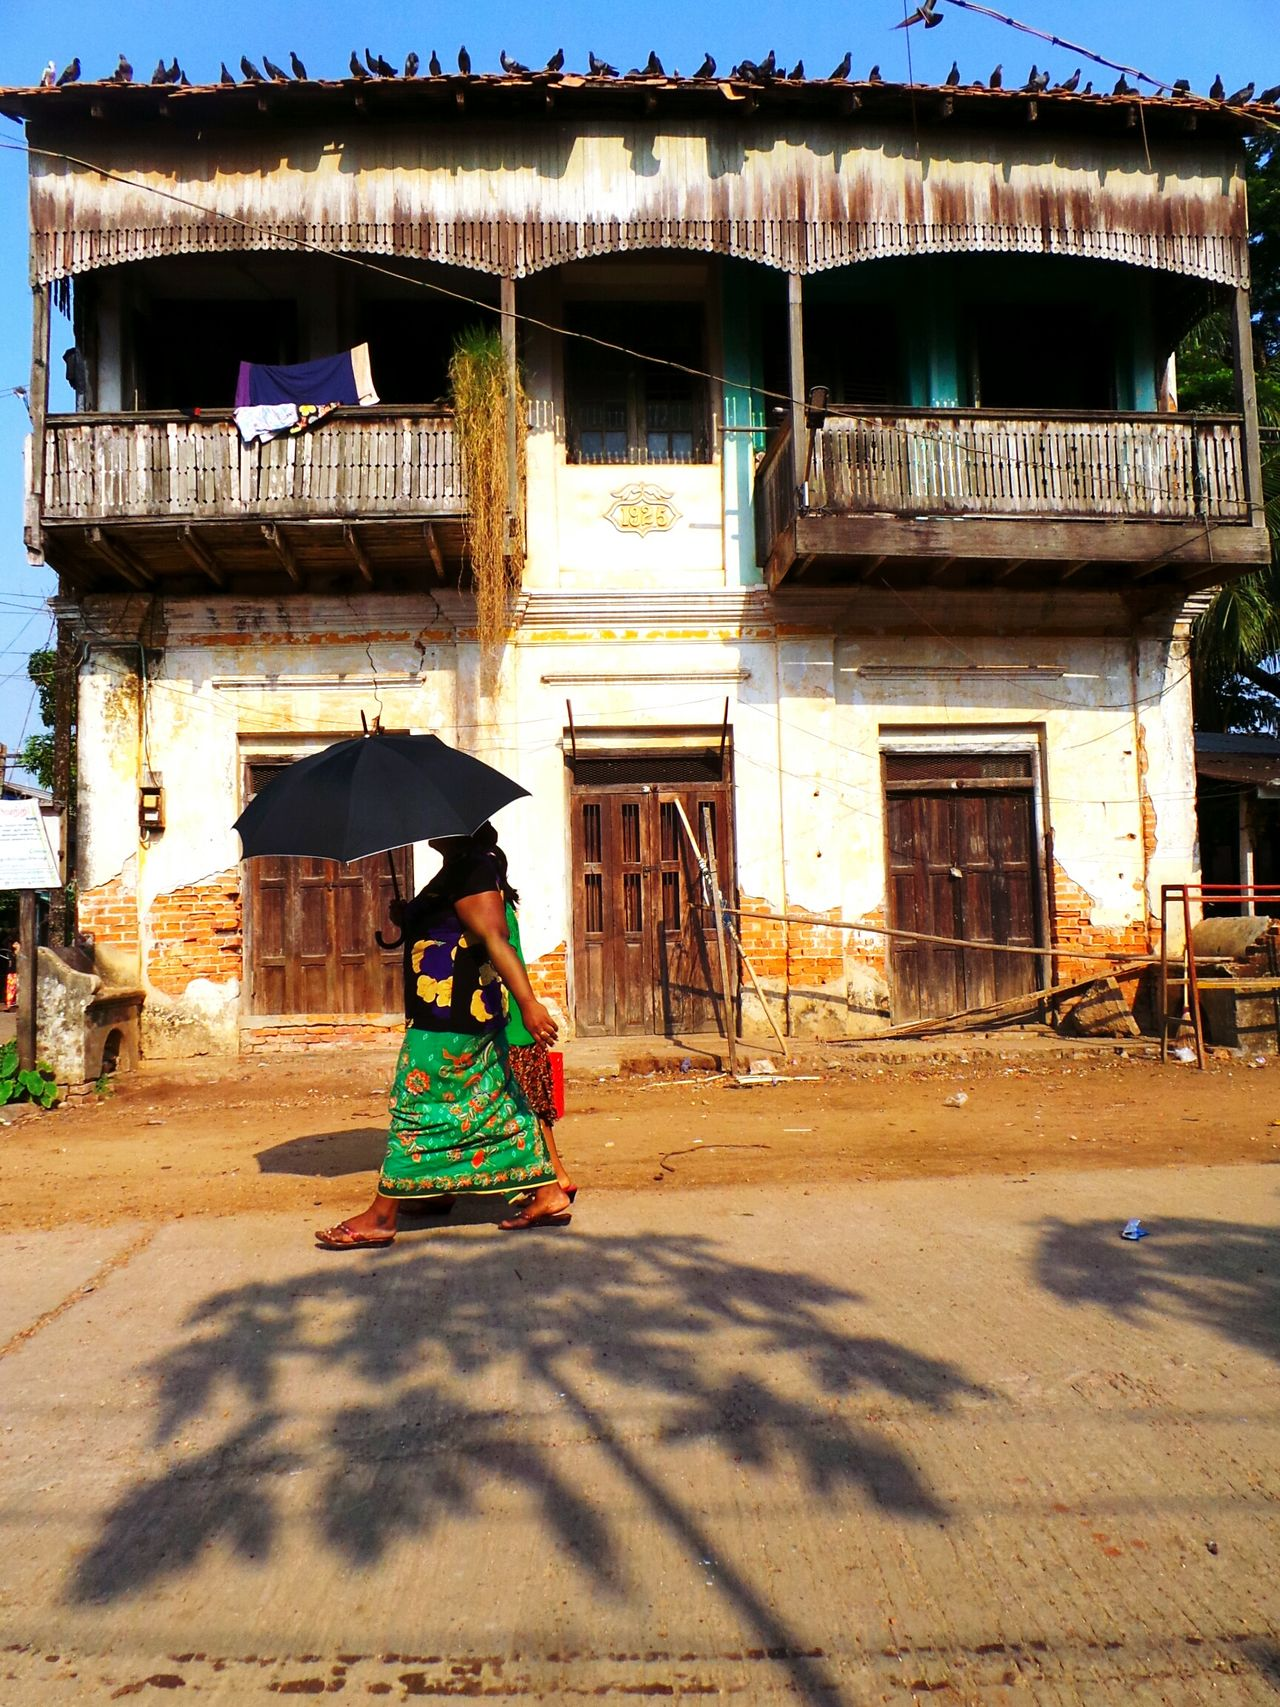 Miss Sunshine. Architecture Building Exterior Built Structure Full Length Lifestyles Shadow Casual Clothing Umbrella On The Go  Hot Summer Day Mwalamyine Myanmarstreetphotography Myanmar Myanmarphotos Myanmararchitecture Outdoors